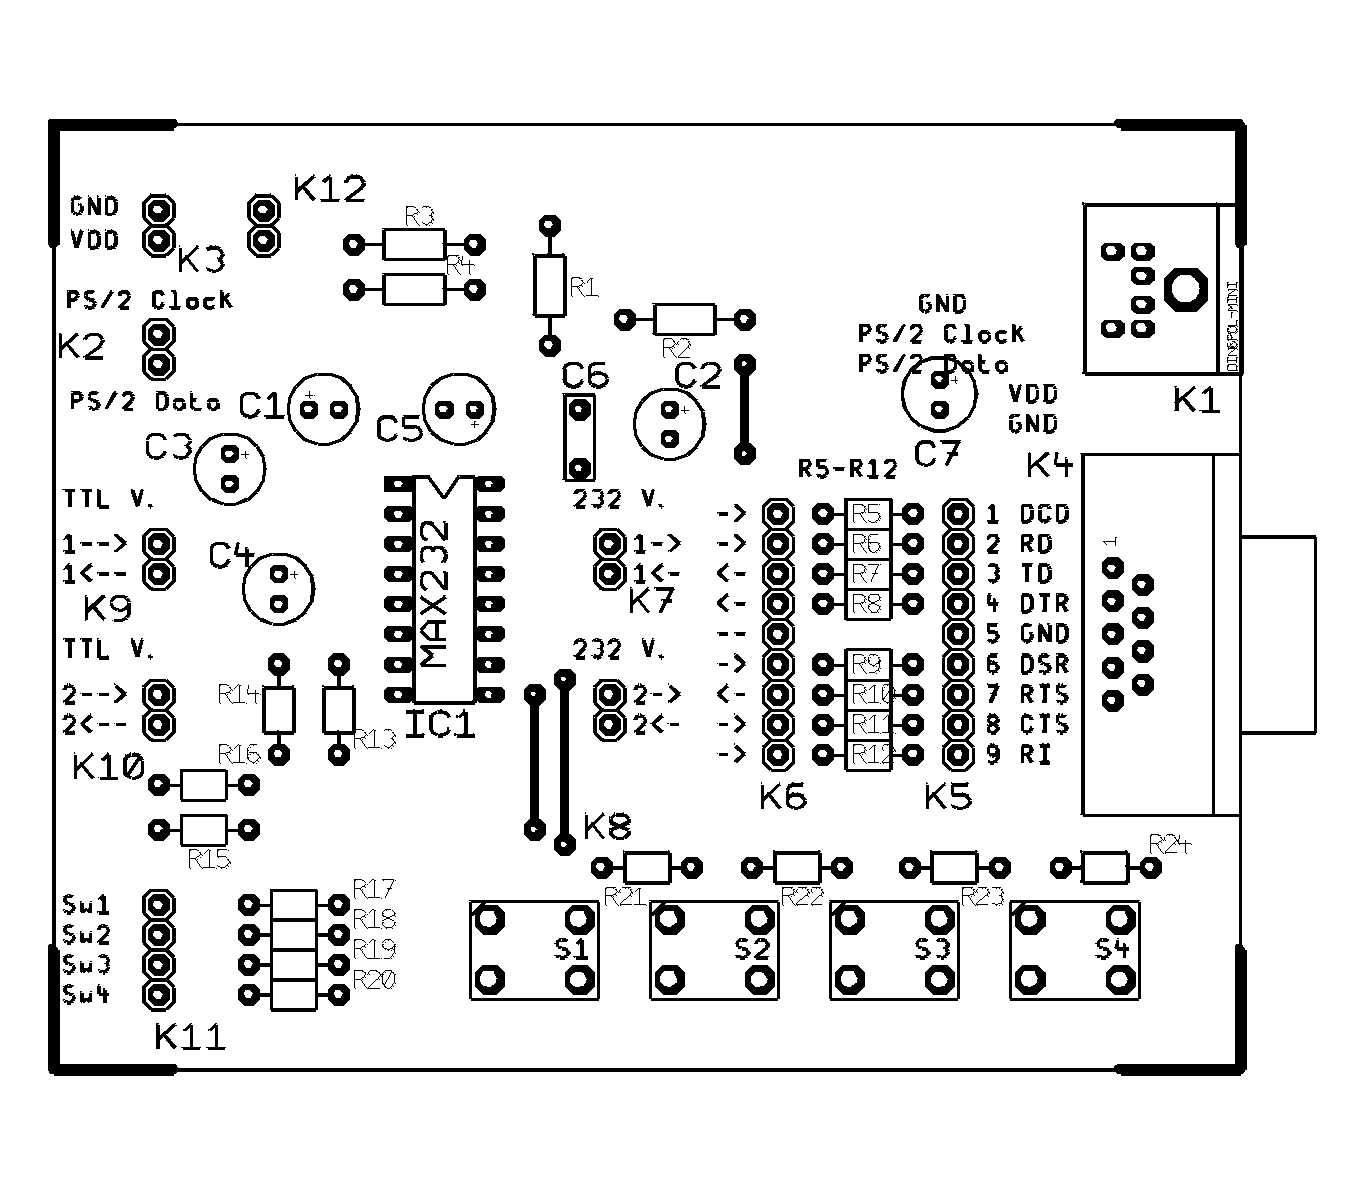 Connecting A Microcontroller To Rs 232 Ports And Ps 2 Devices Rs232 Schematic Copper Side Layout At 300 Dpi 128 Kb